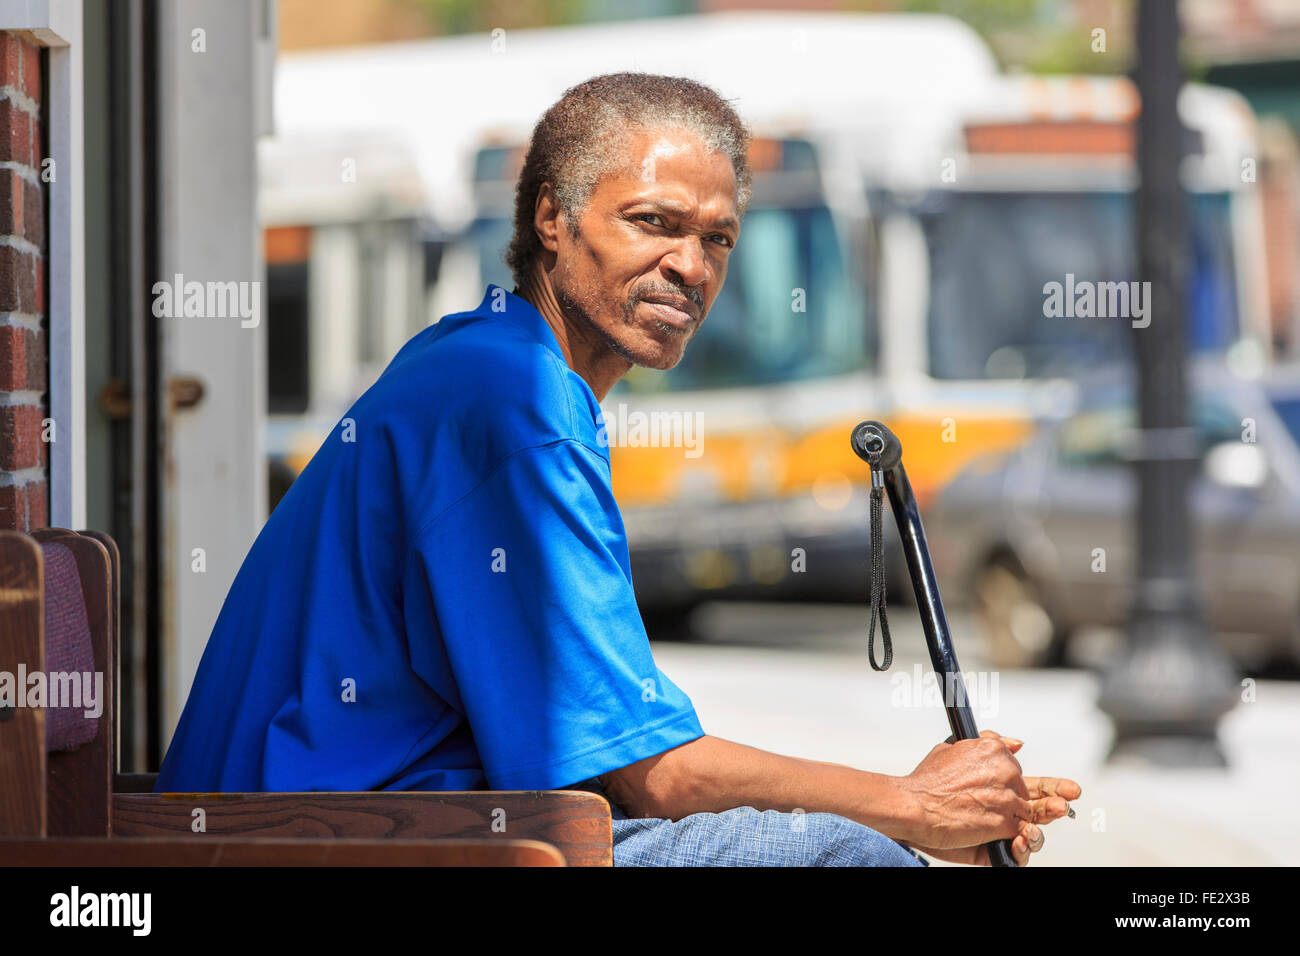 Man with Traumatic Brain Injury relaxing with his cane near the bus station - Stock Image